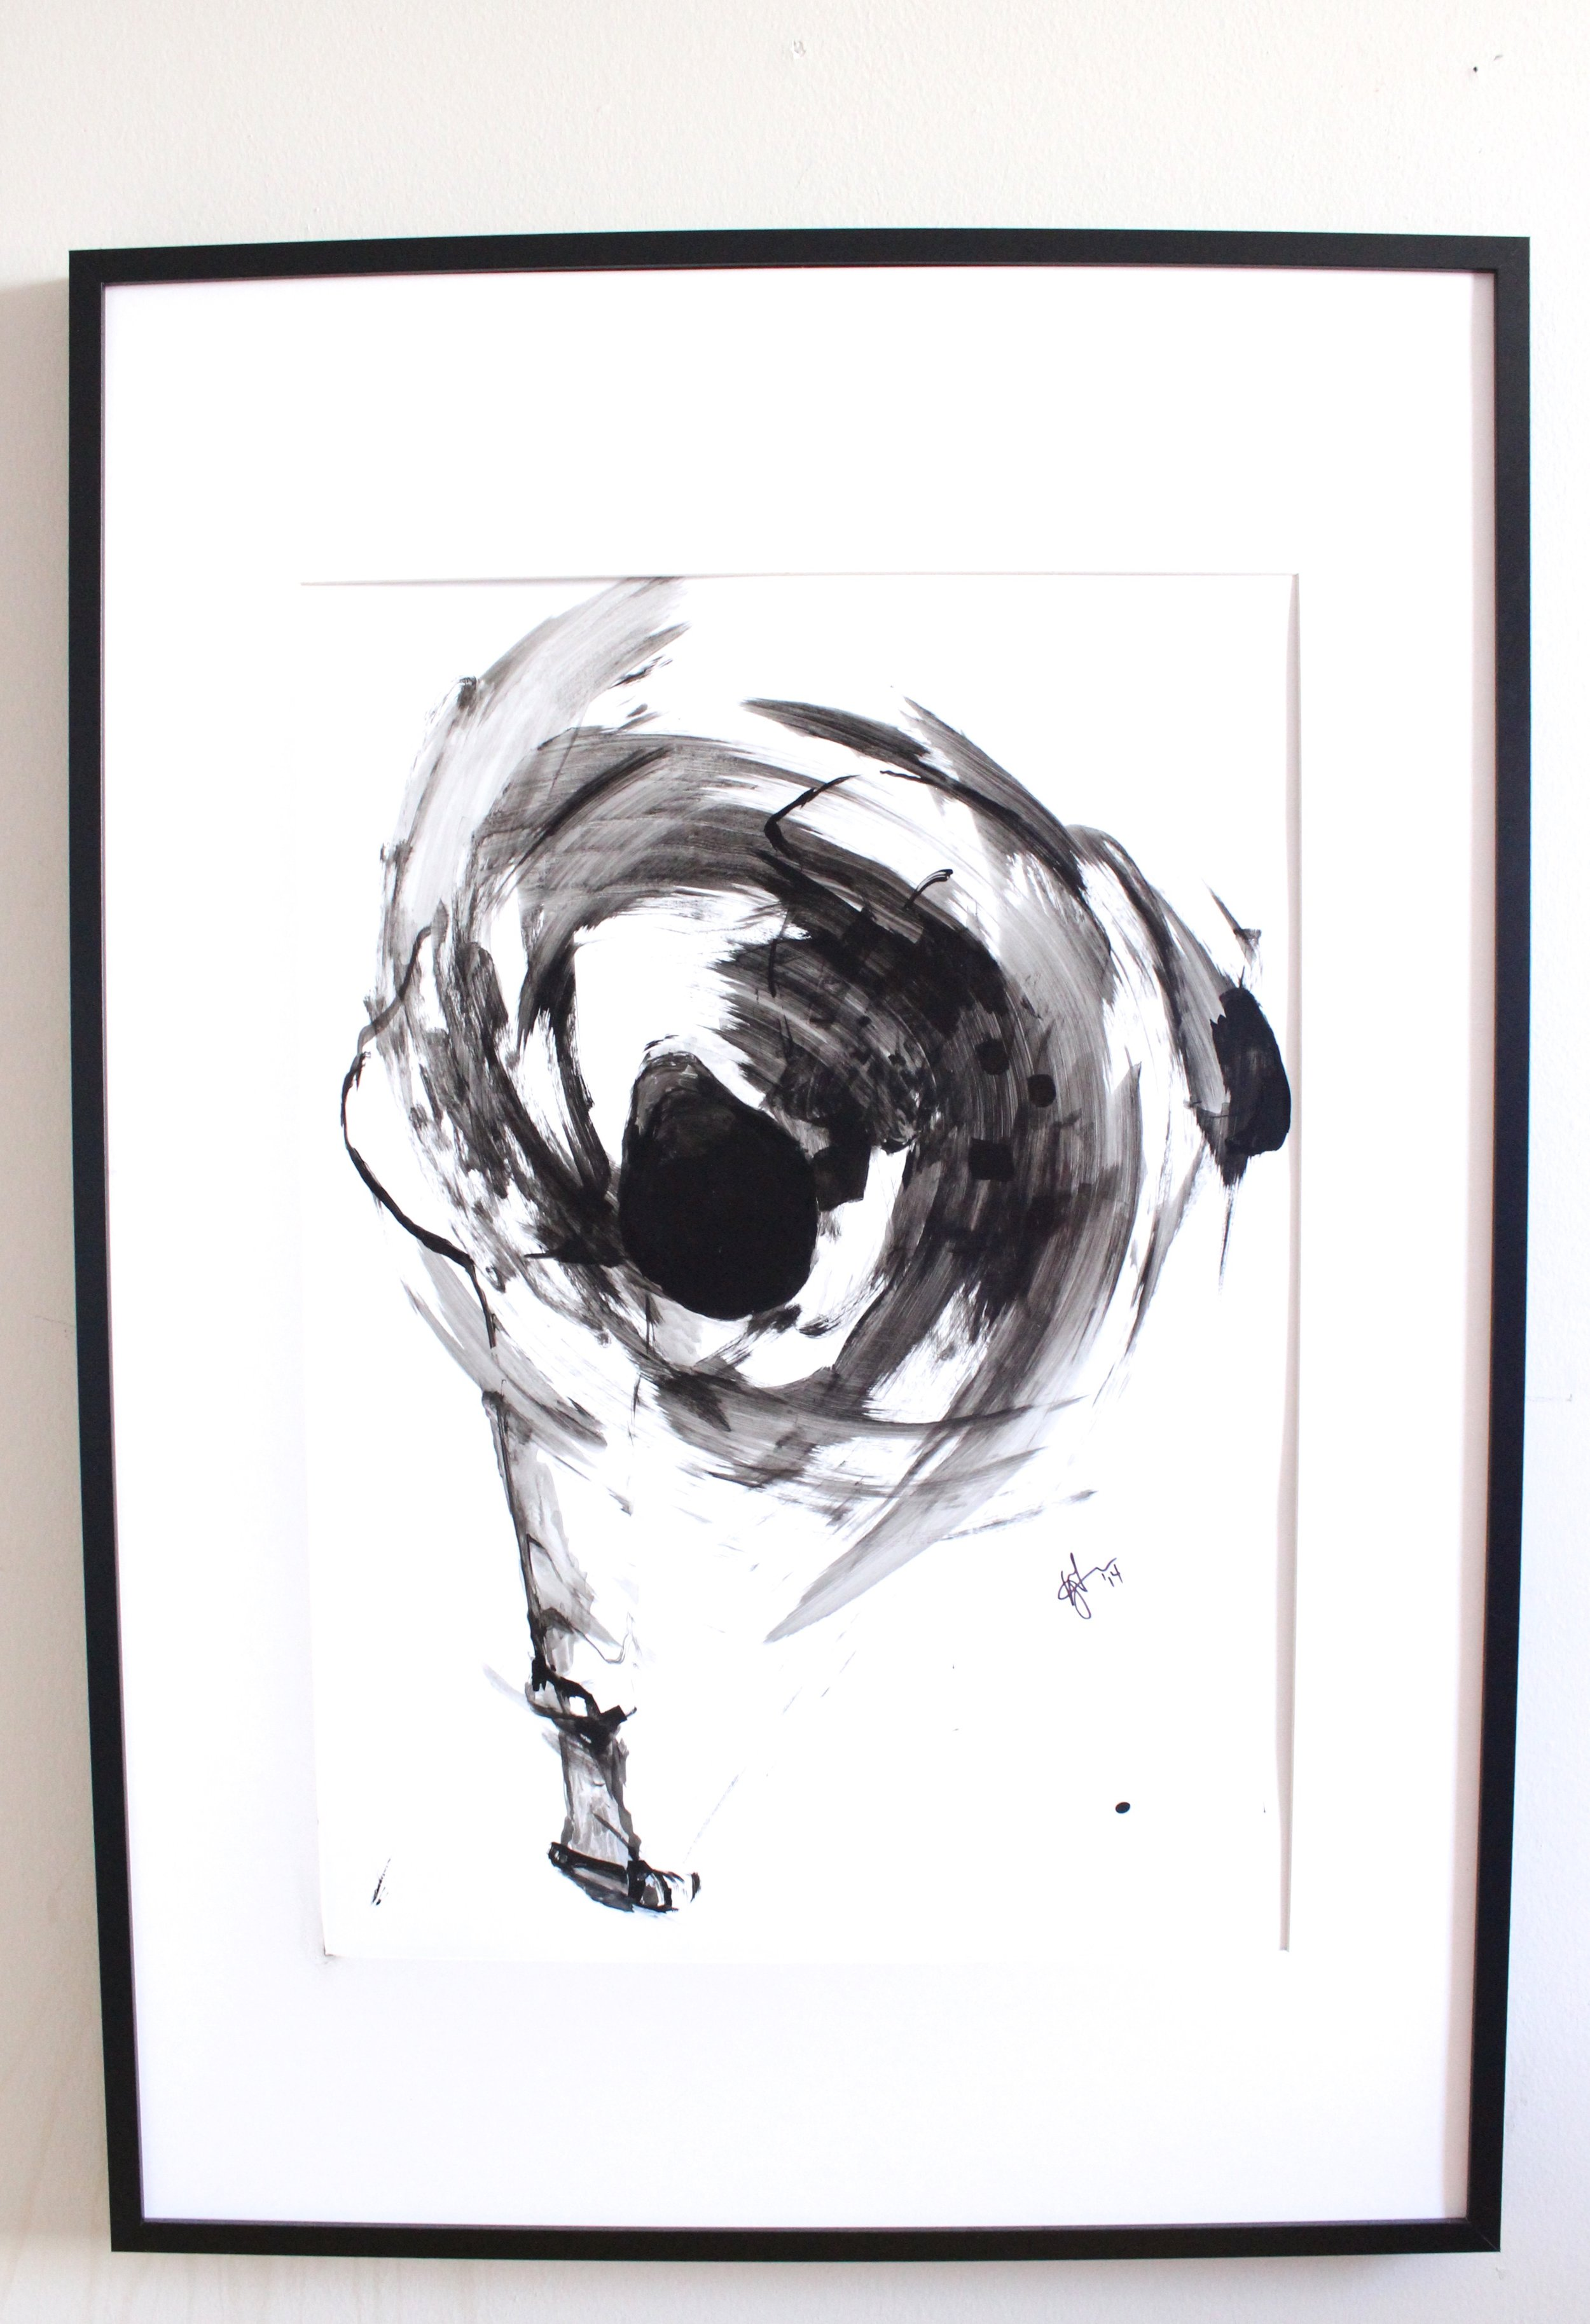 Copy of Uchimate Judo Throw, 2014. Ink on paper. 36x48